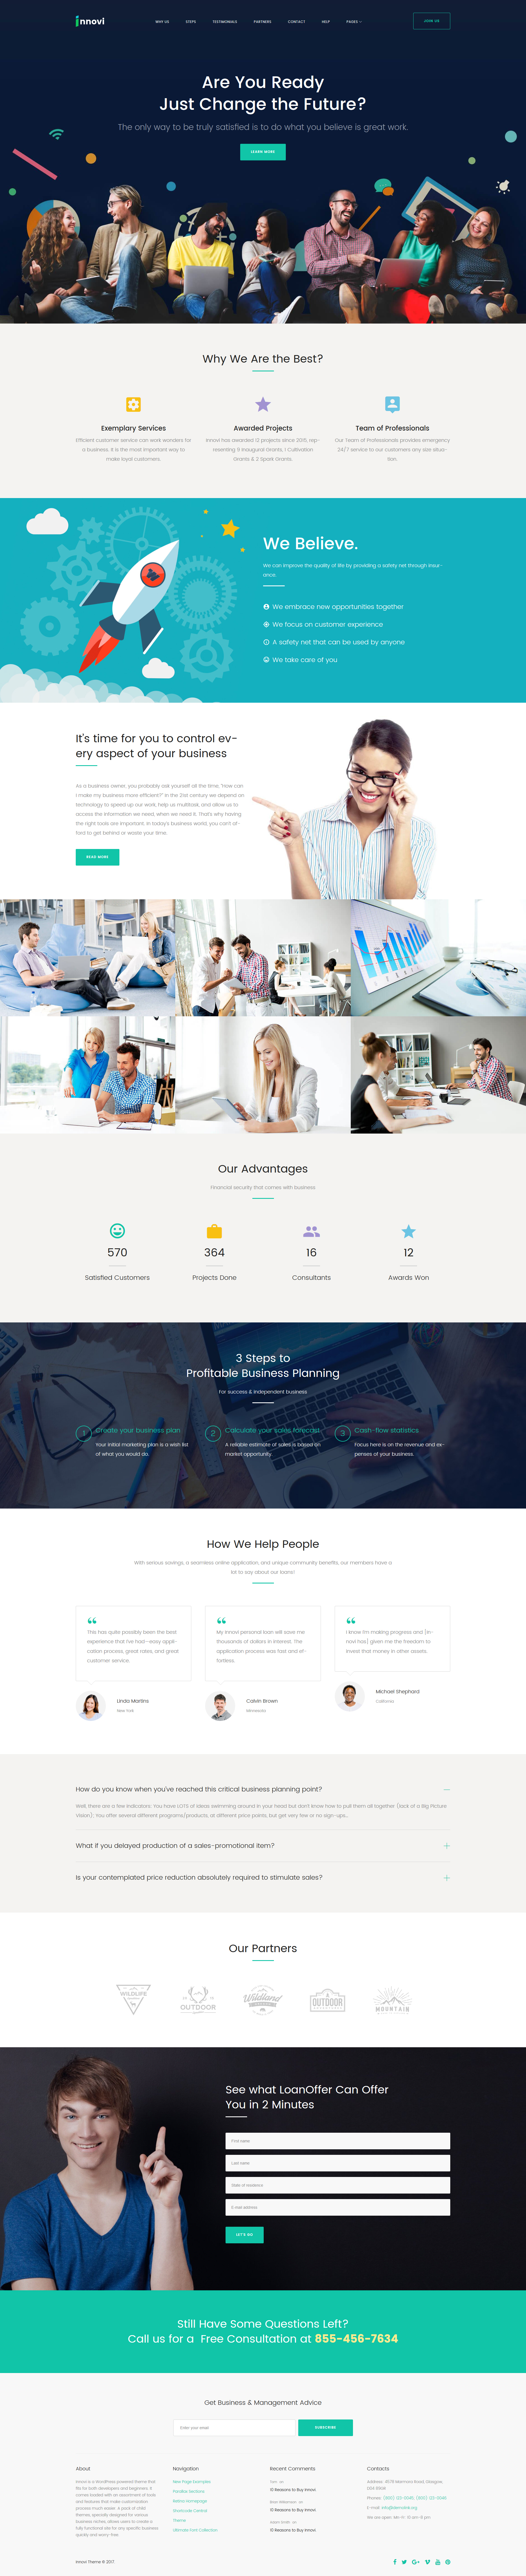 Startup & Creative Digital Agency WordPress Theme - screenshot